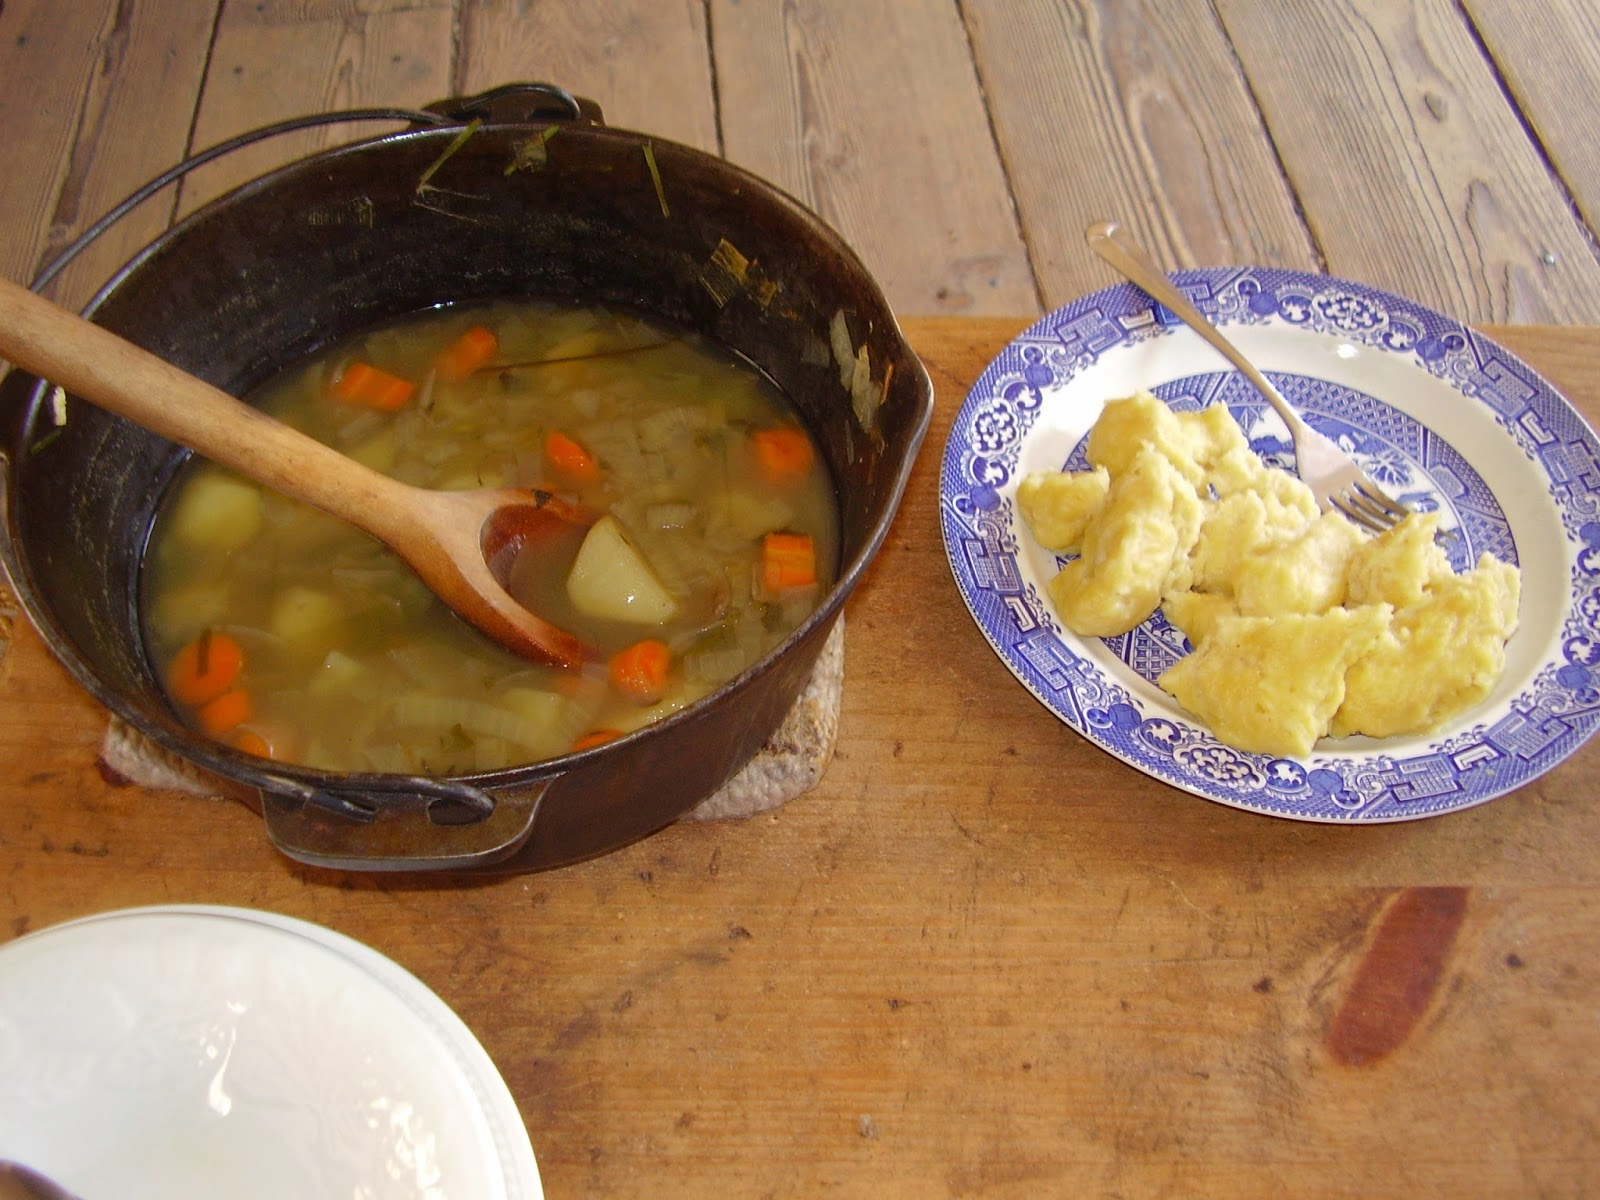 Leek stew and dumplings.